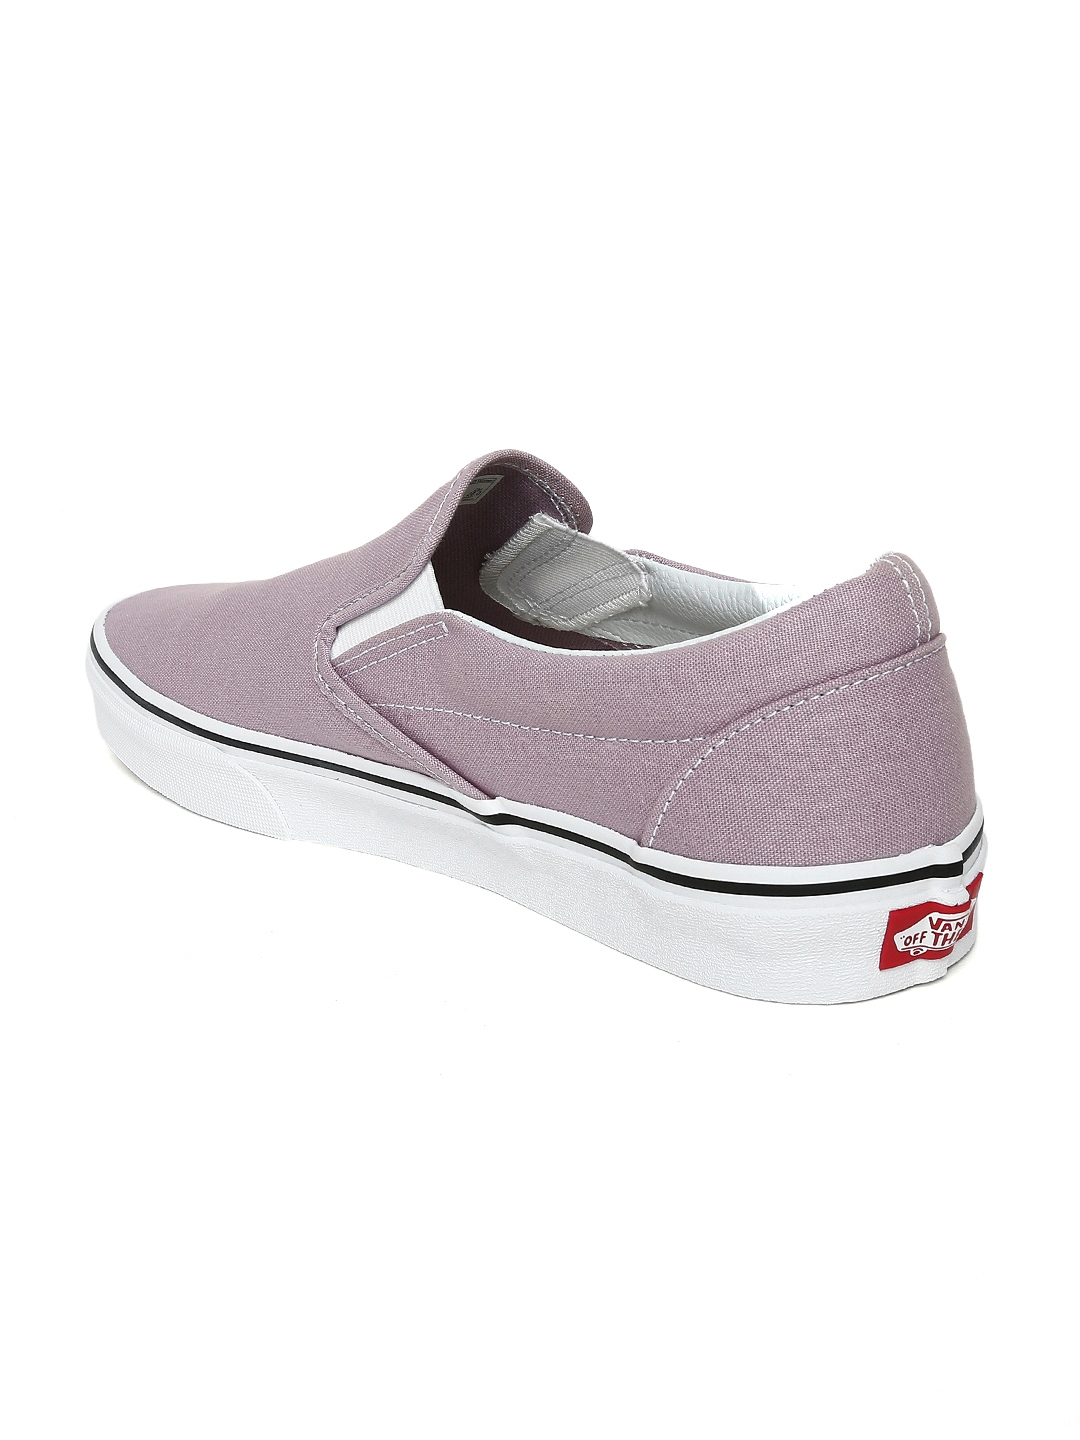 43e1524bf1 Buy Vans Unisex Lavender Classic Slip On Sneakers - Casual Shoes for ...